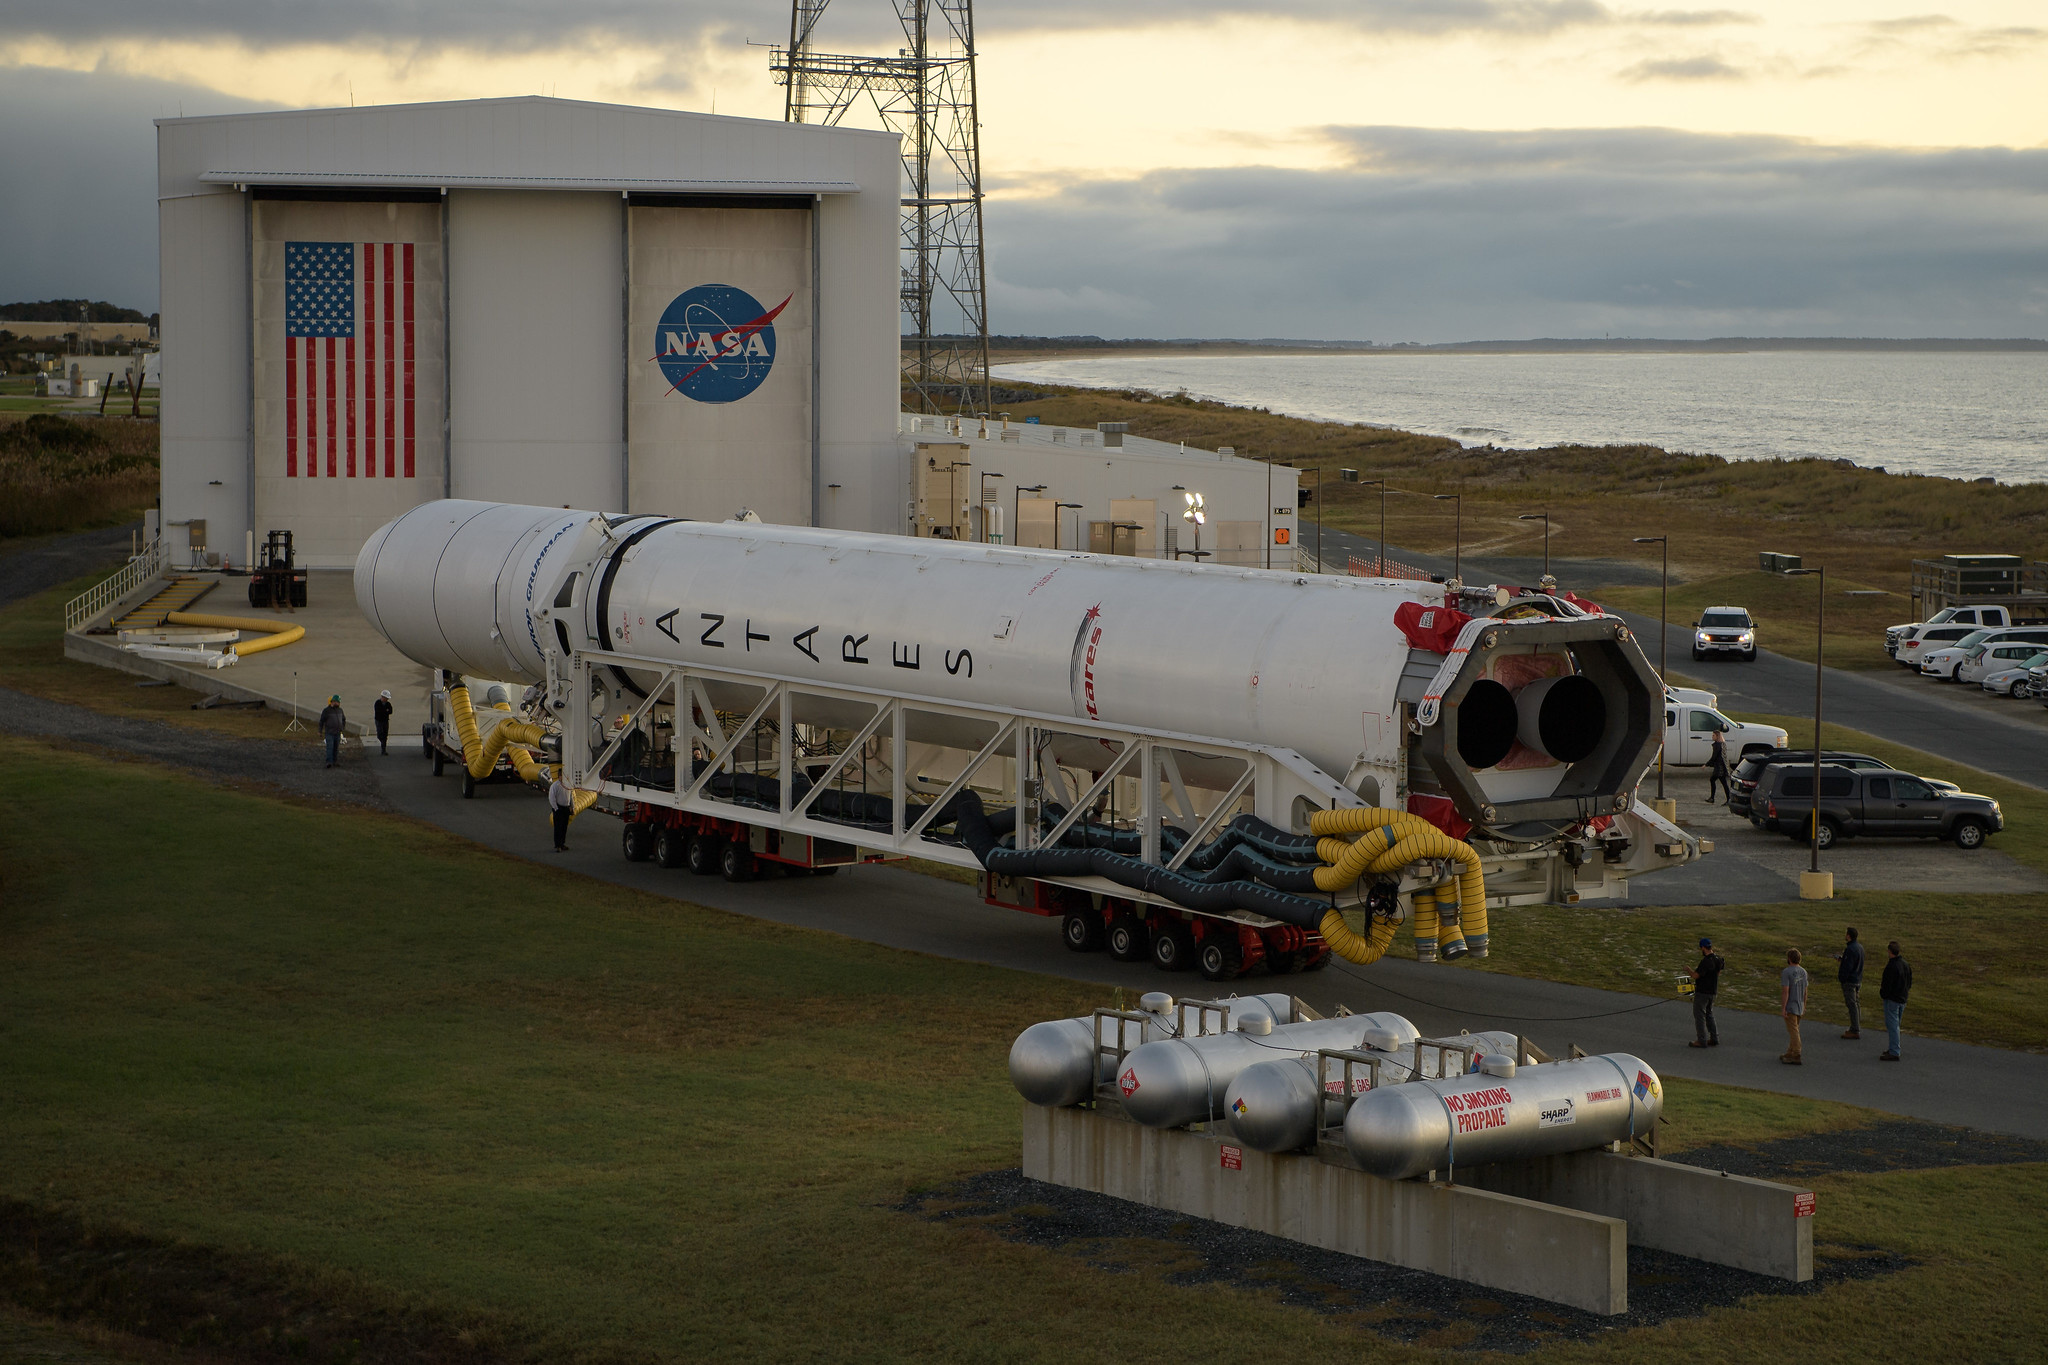 Radiation Experiment Cookie Oven And More Headed To Space Station On Cygnus Cargo Ship Space